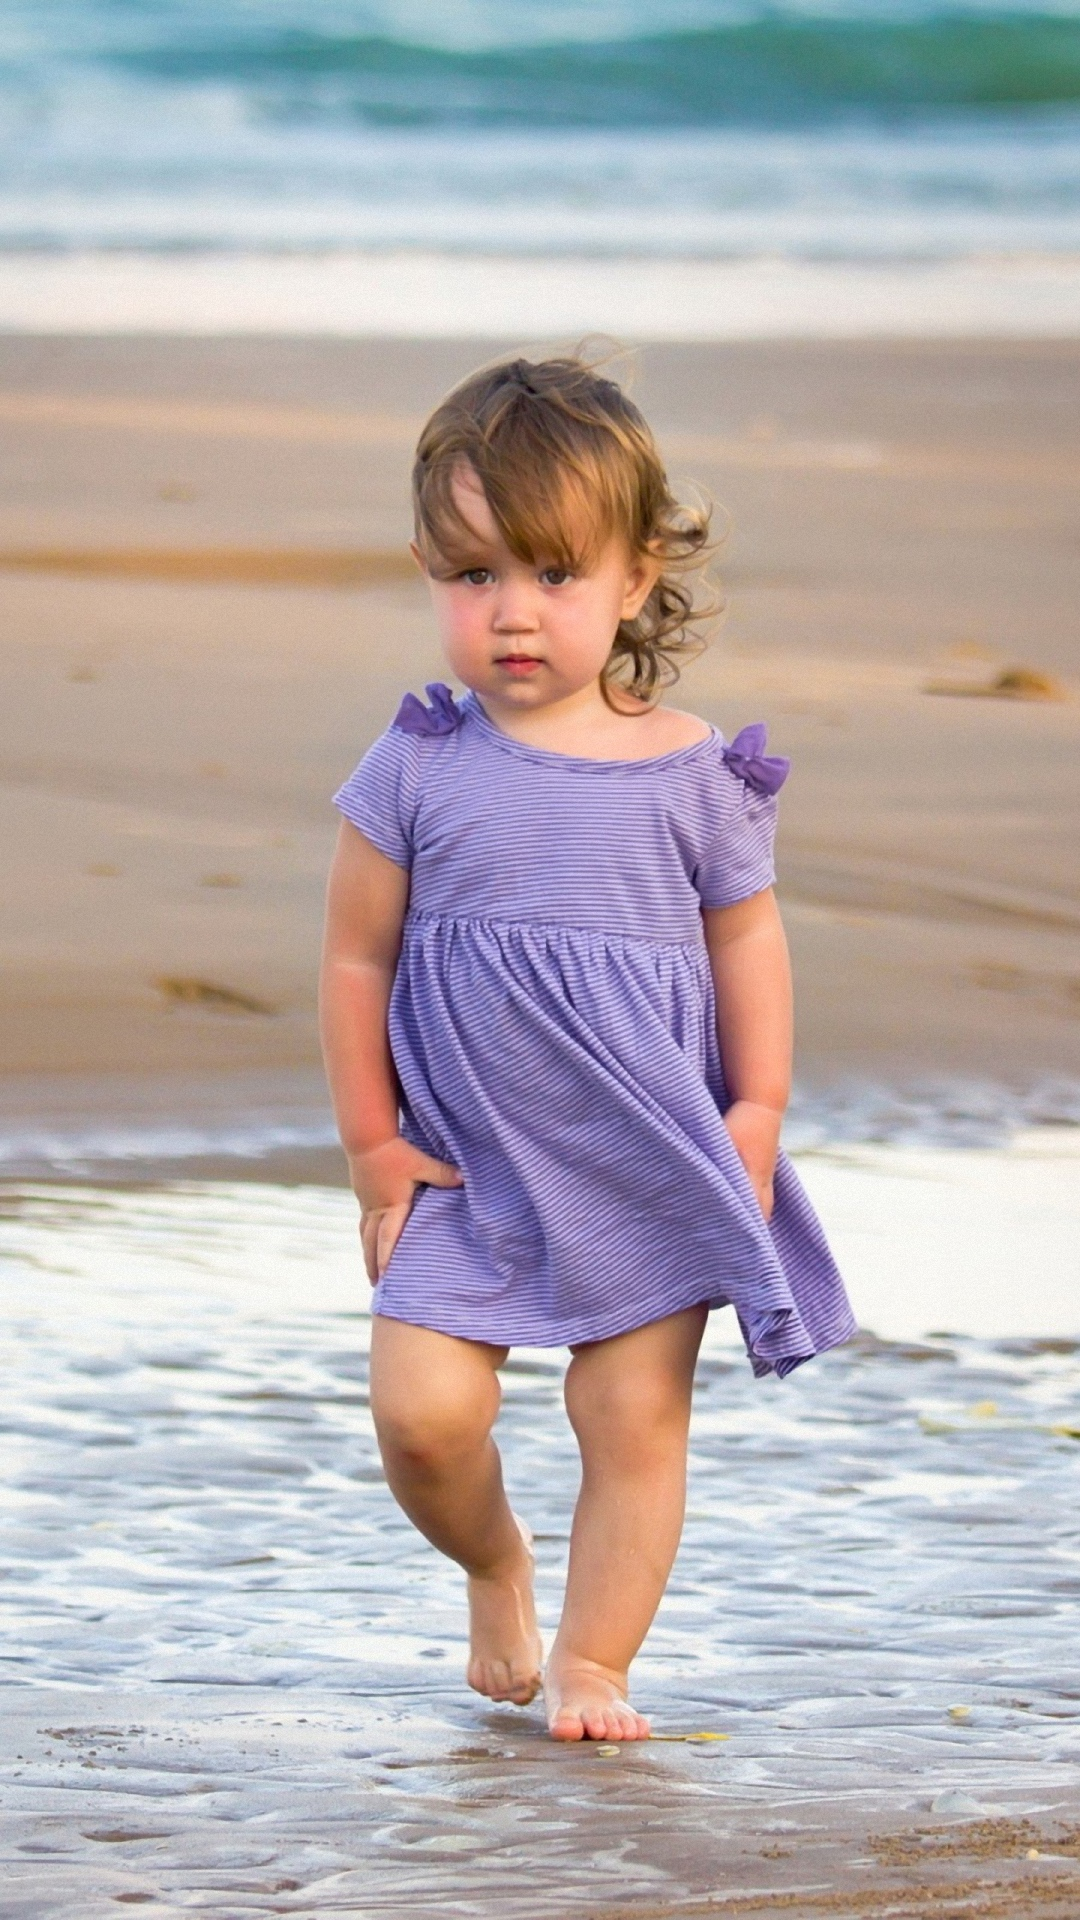 Hd Child Sea Surf Sand Galaxy S4 S5 Wallpapers - Nature And Baby Quotes - HD Wallpaper